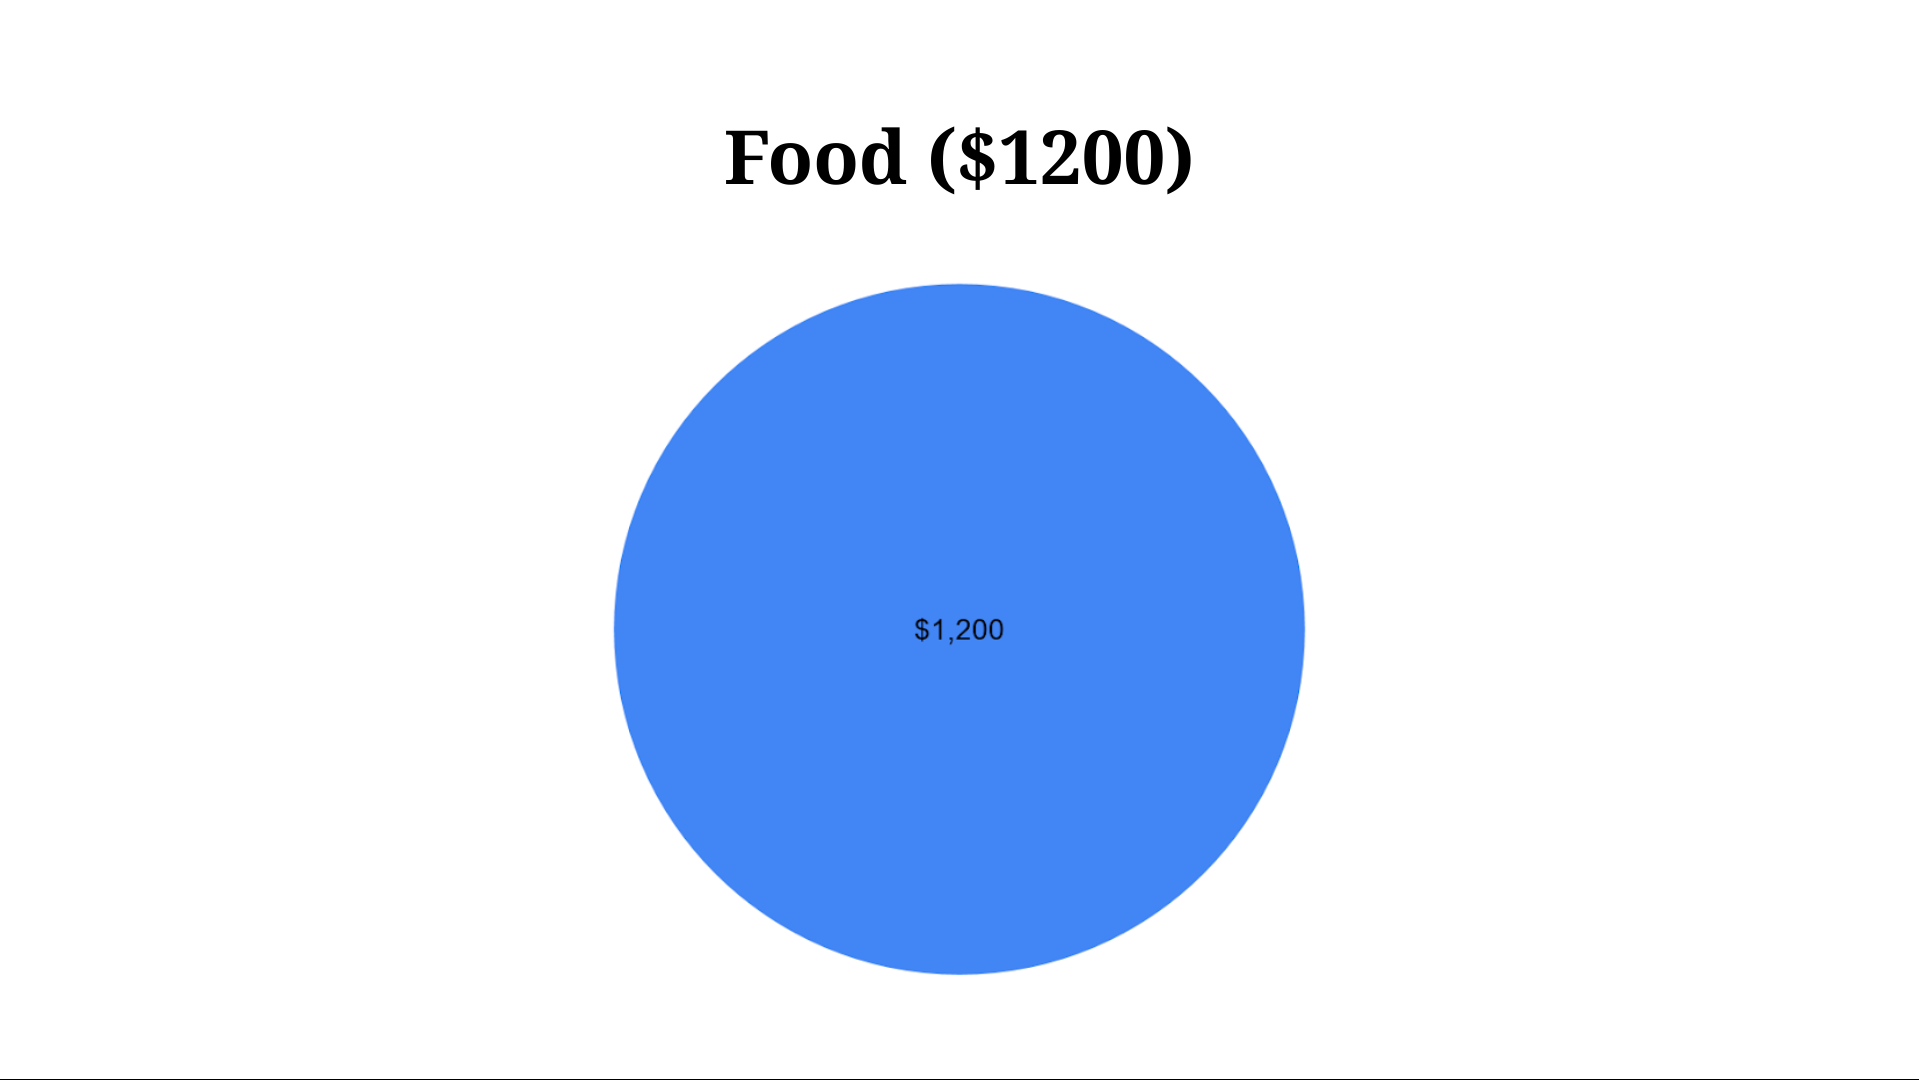 Food expenses